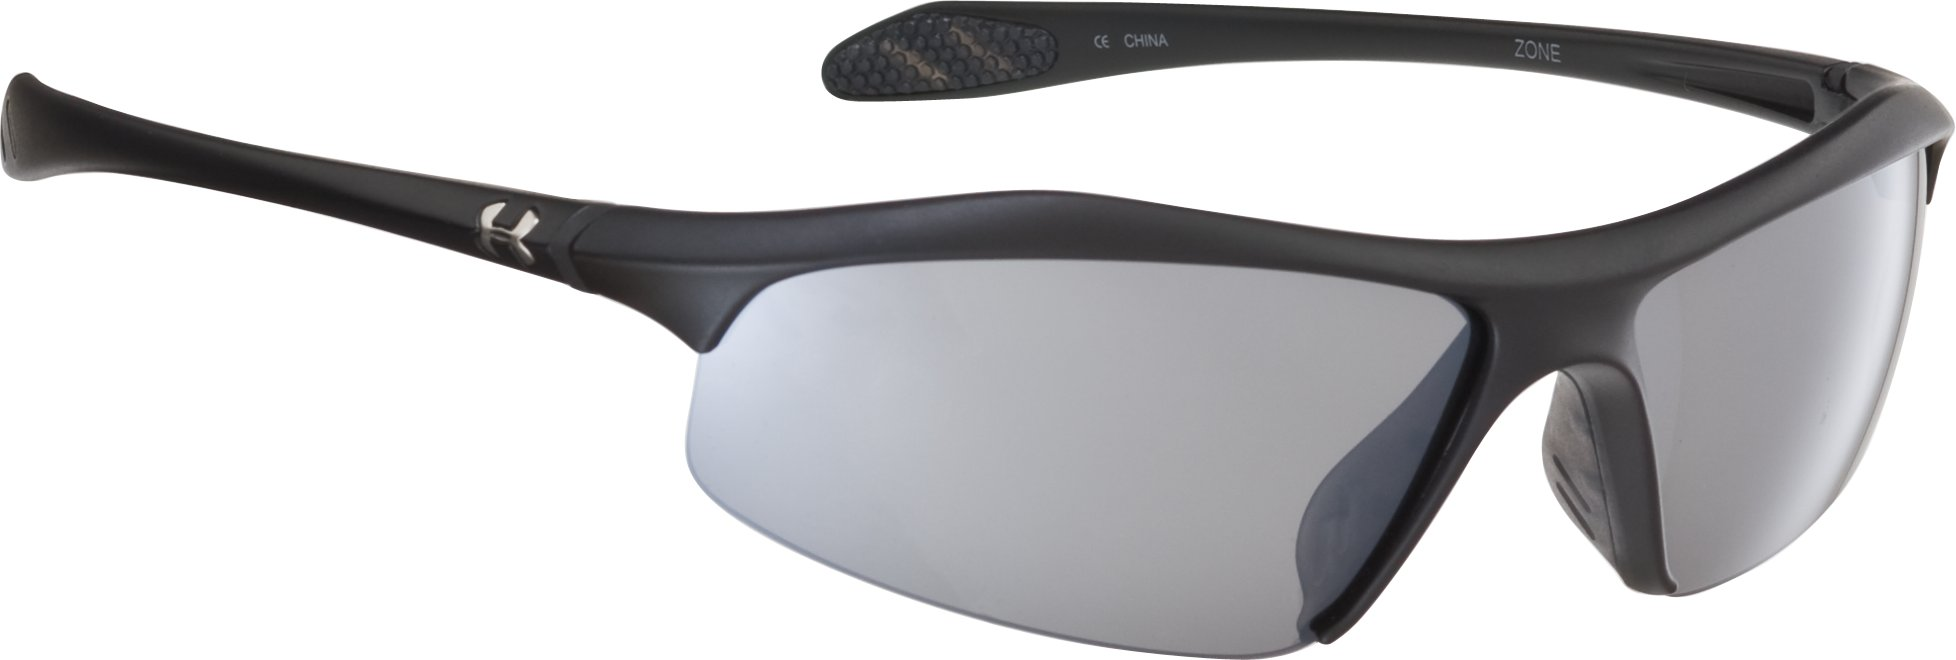 Zone Multiflection™ Sunglasses, Satin Black, zoomed image